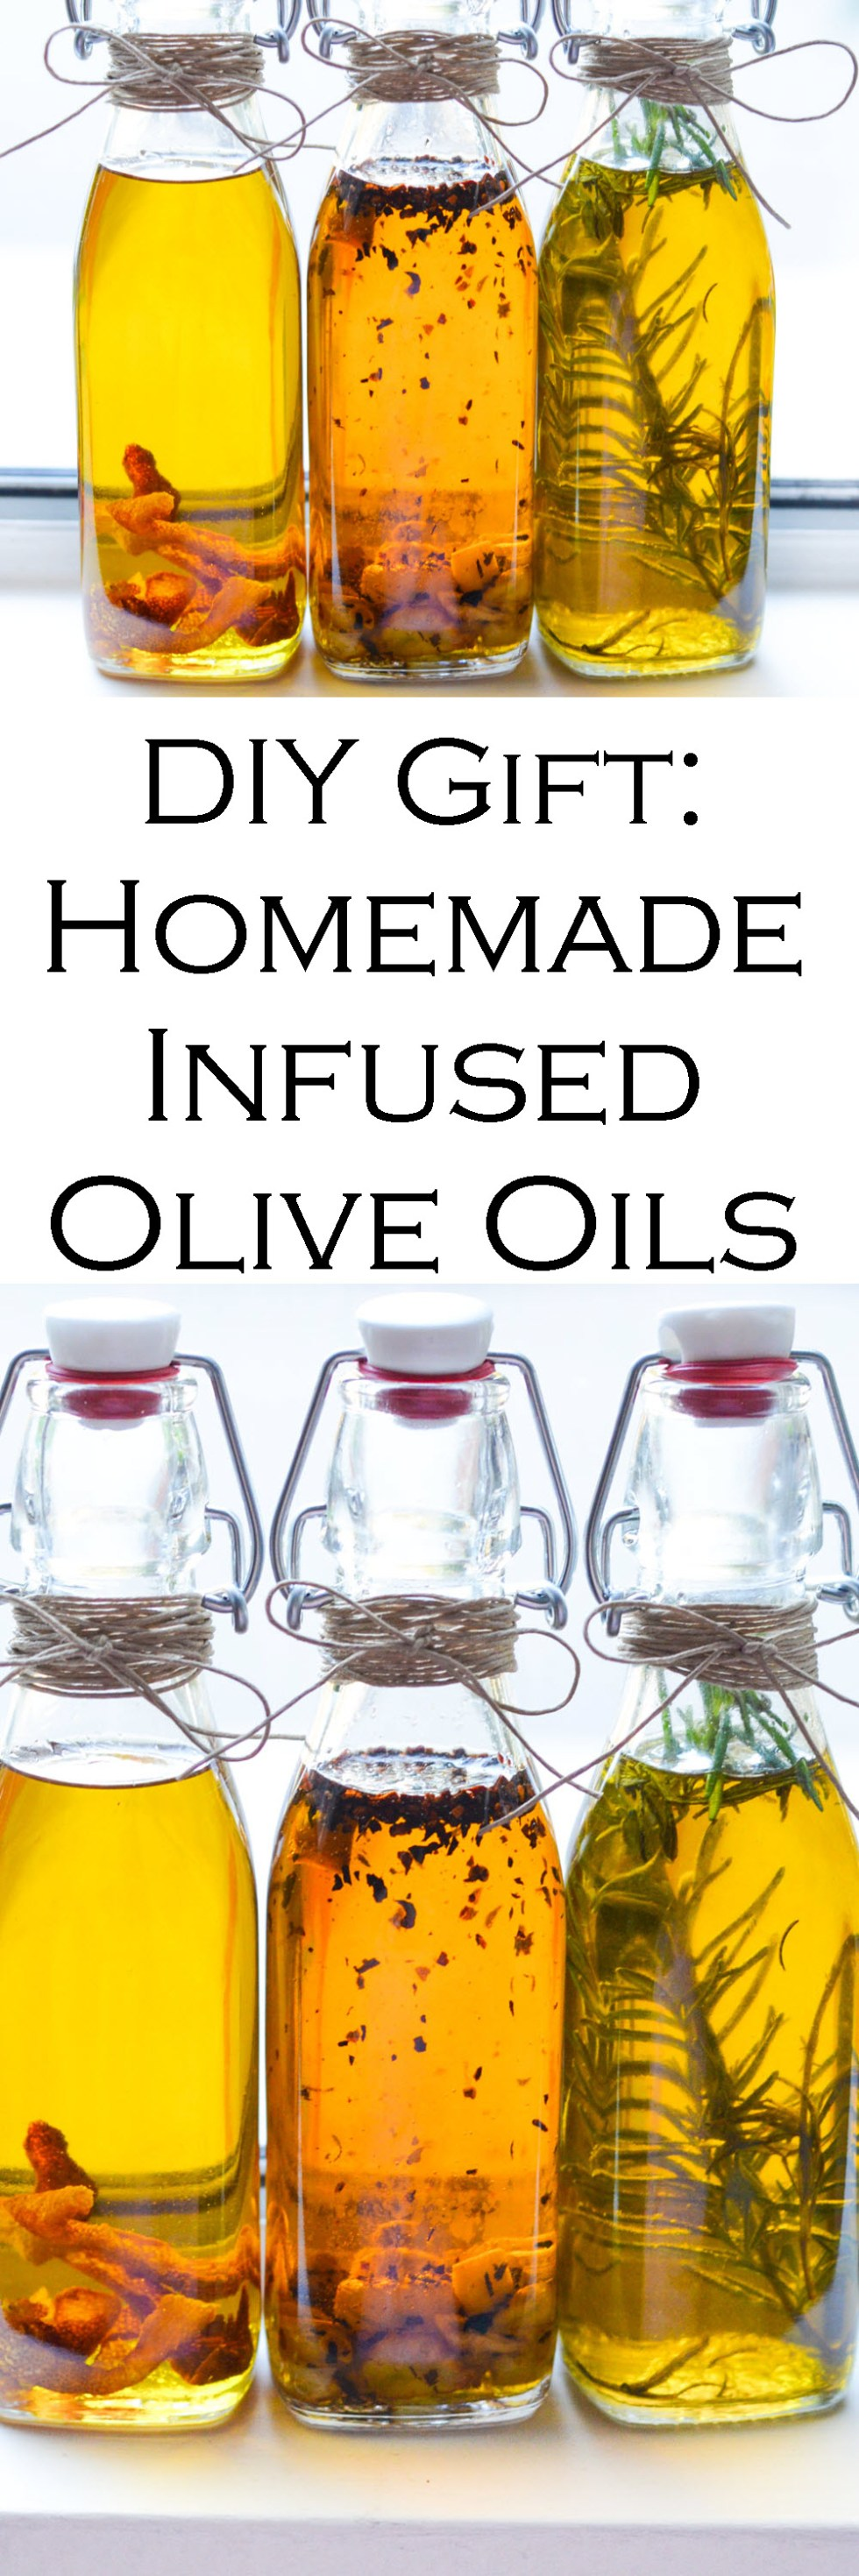 how to make infused olive oil for gifts